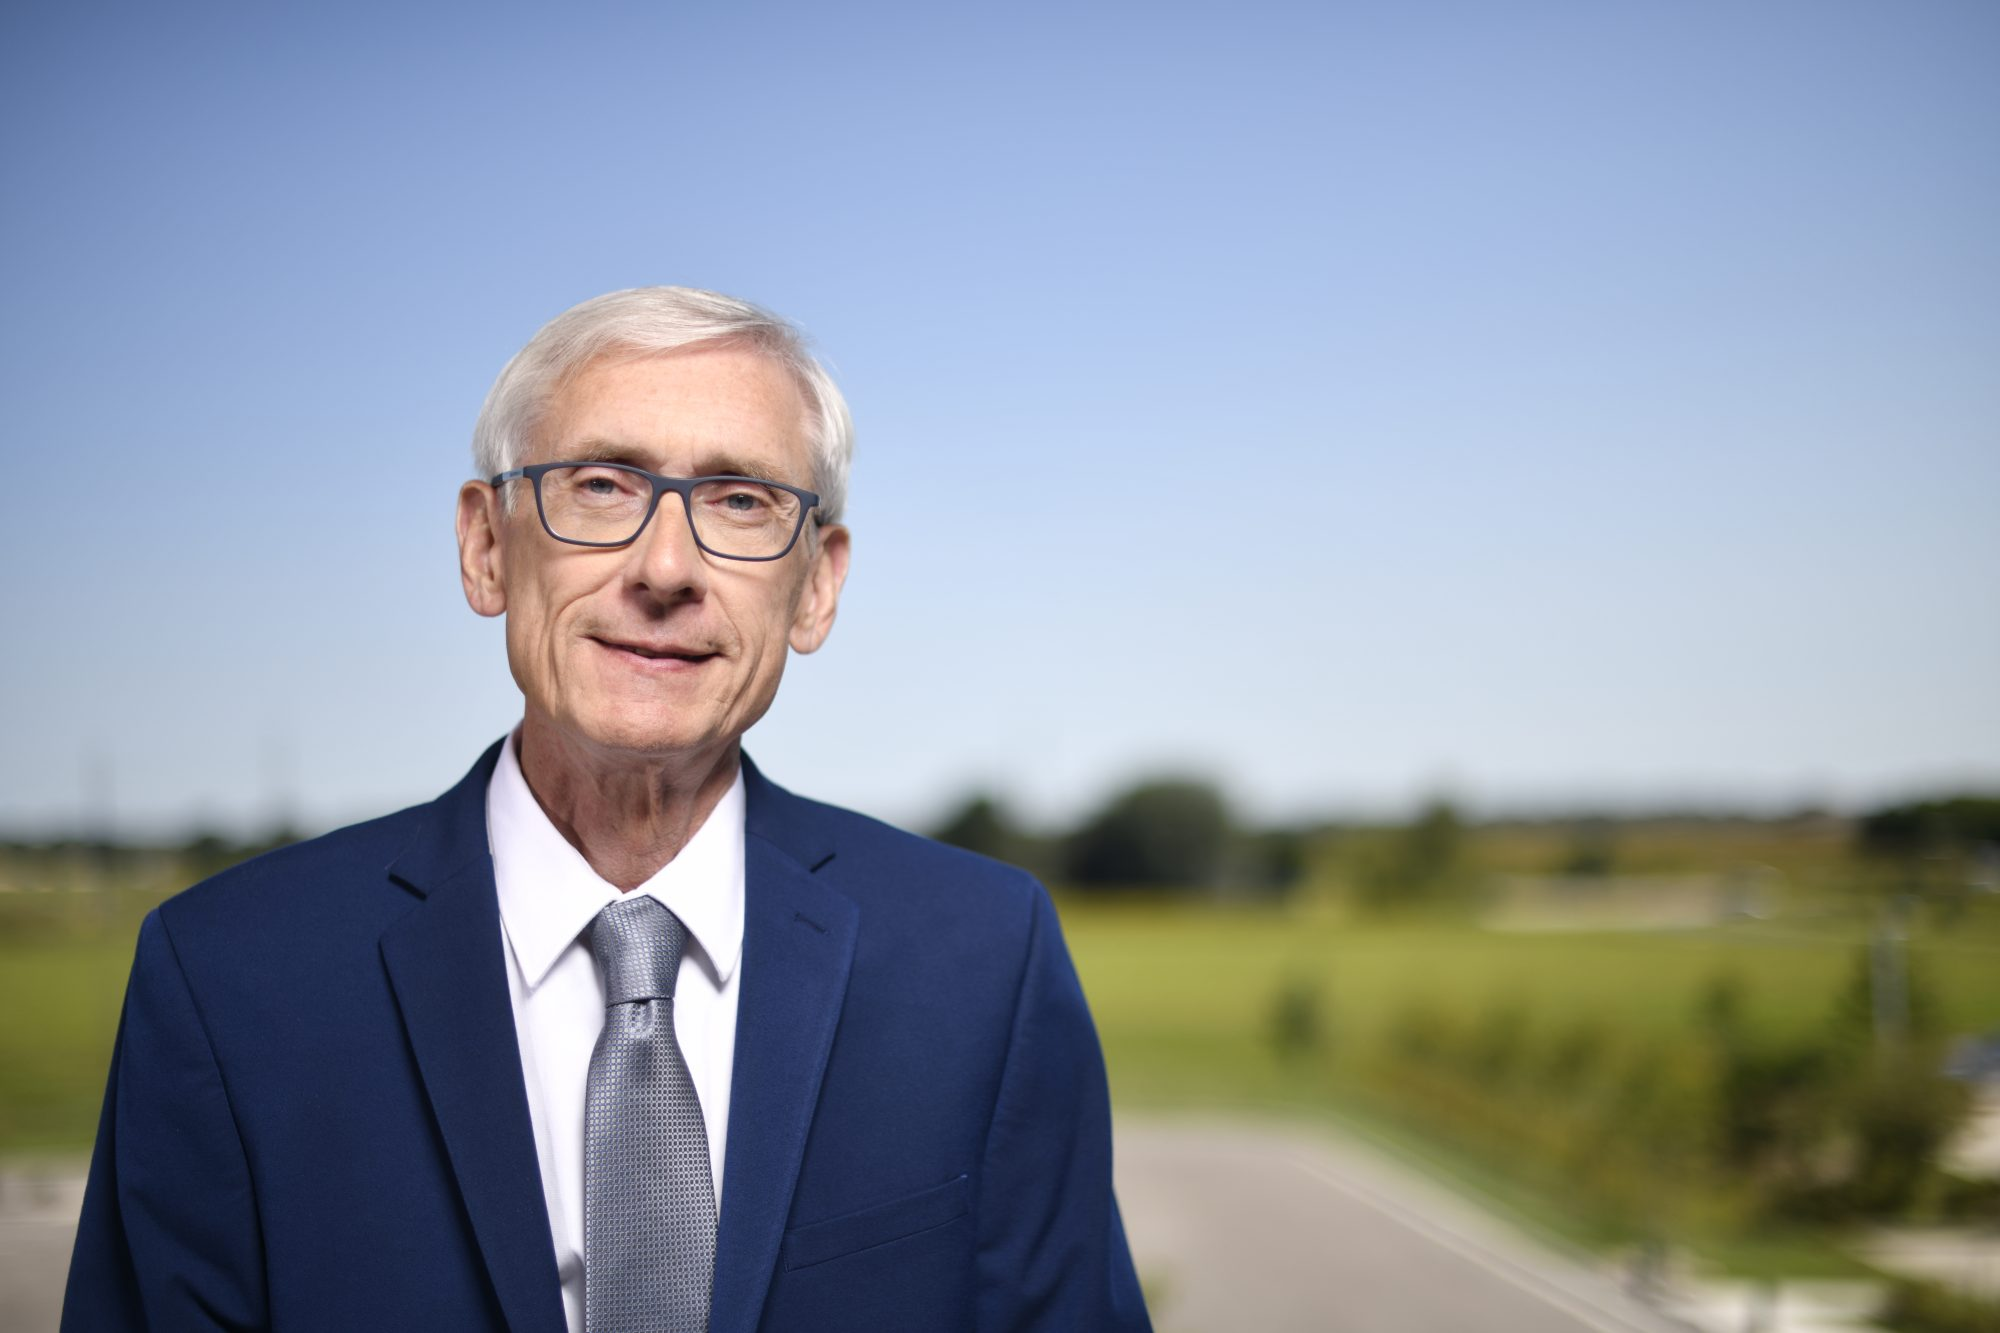 Gov. Evers Announces Pardon Advisory Board, Establishes Pardon Process